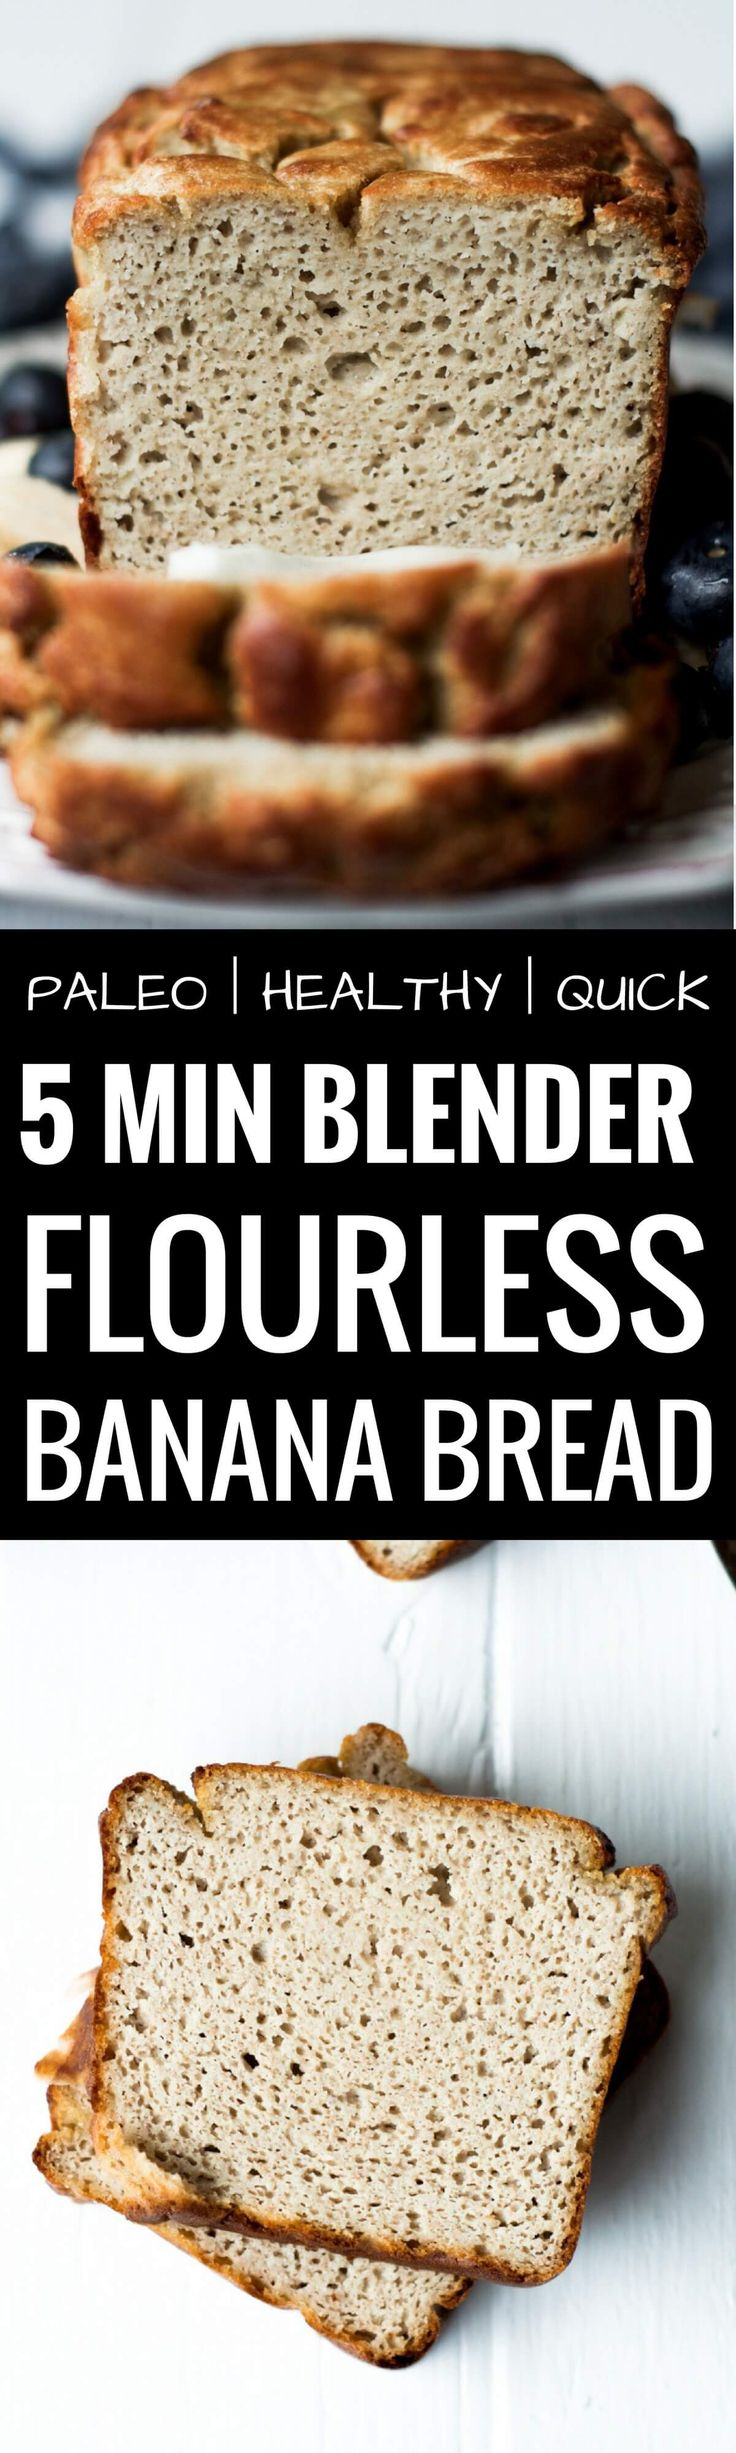 The most delicious paleo banana bread made in 5 minutes!